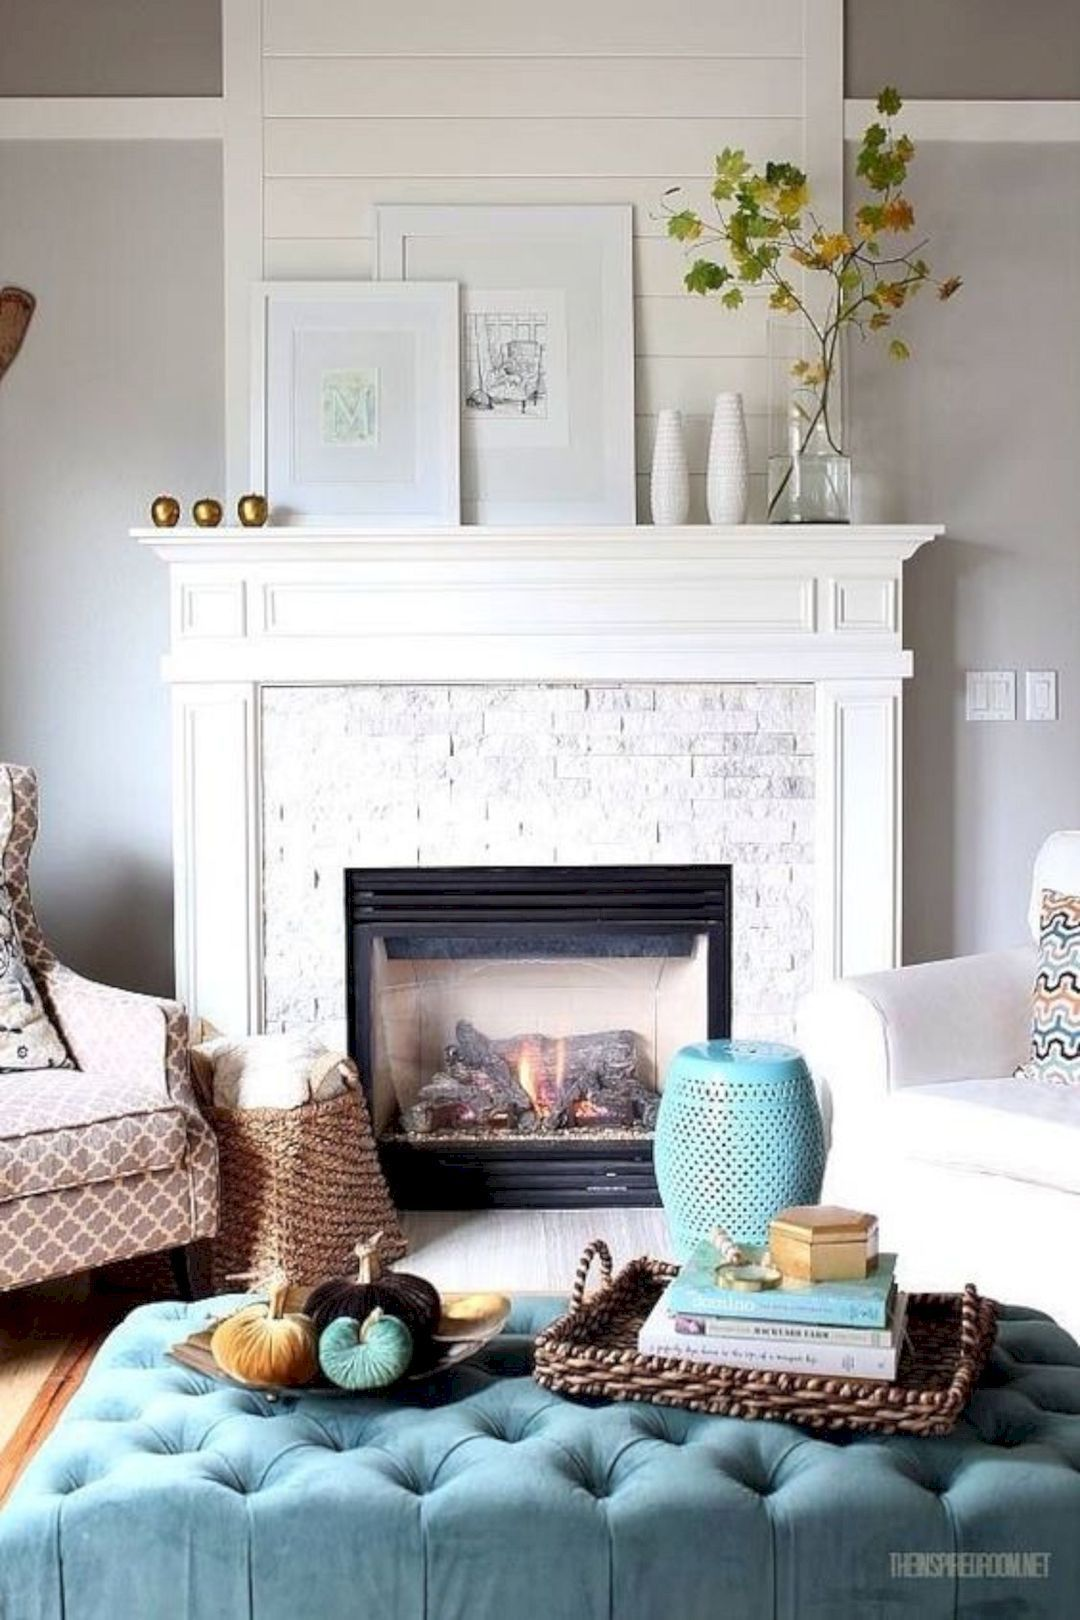 20 Stunning Fireplace Decorating Ideas | Mantle, Living rooms and ...